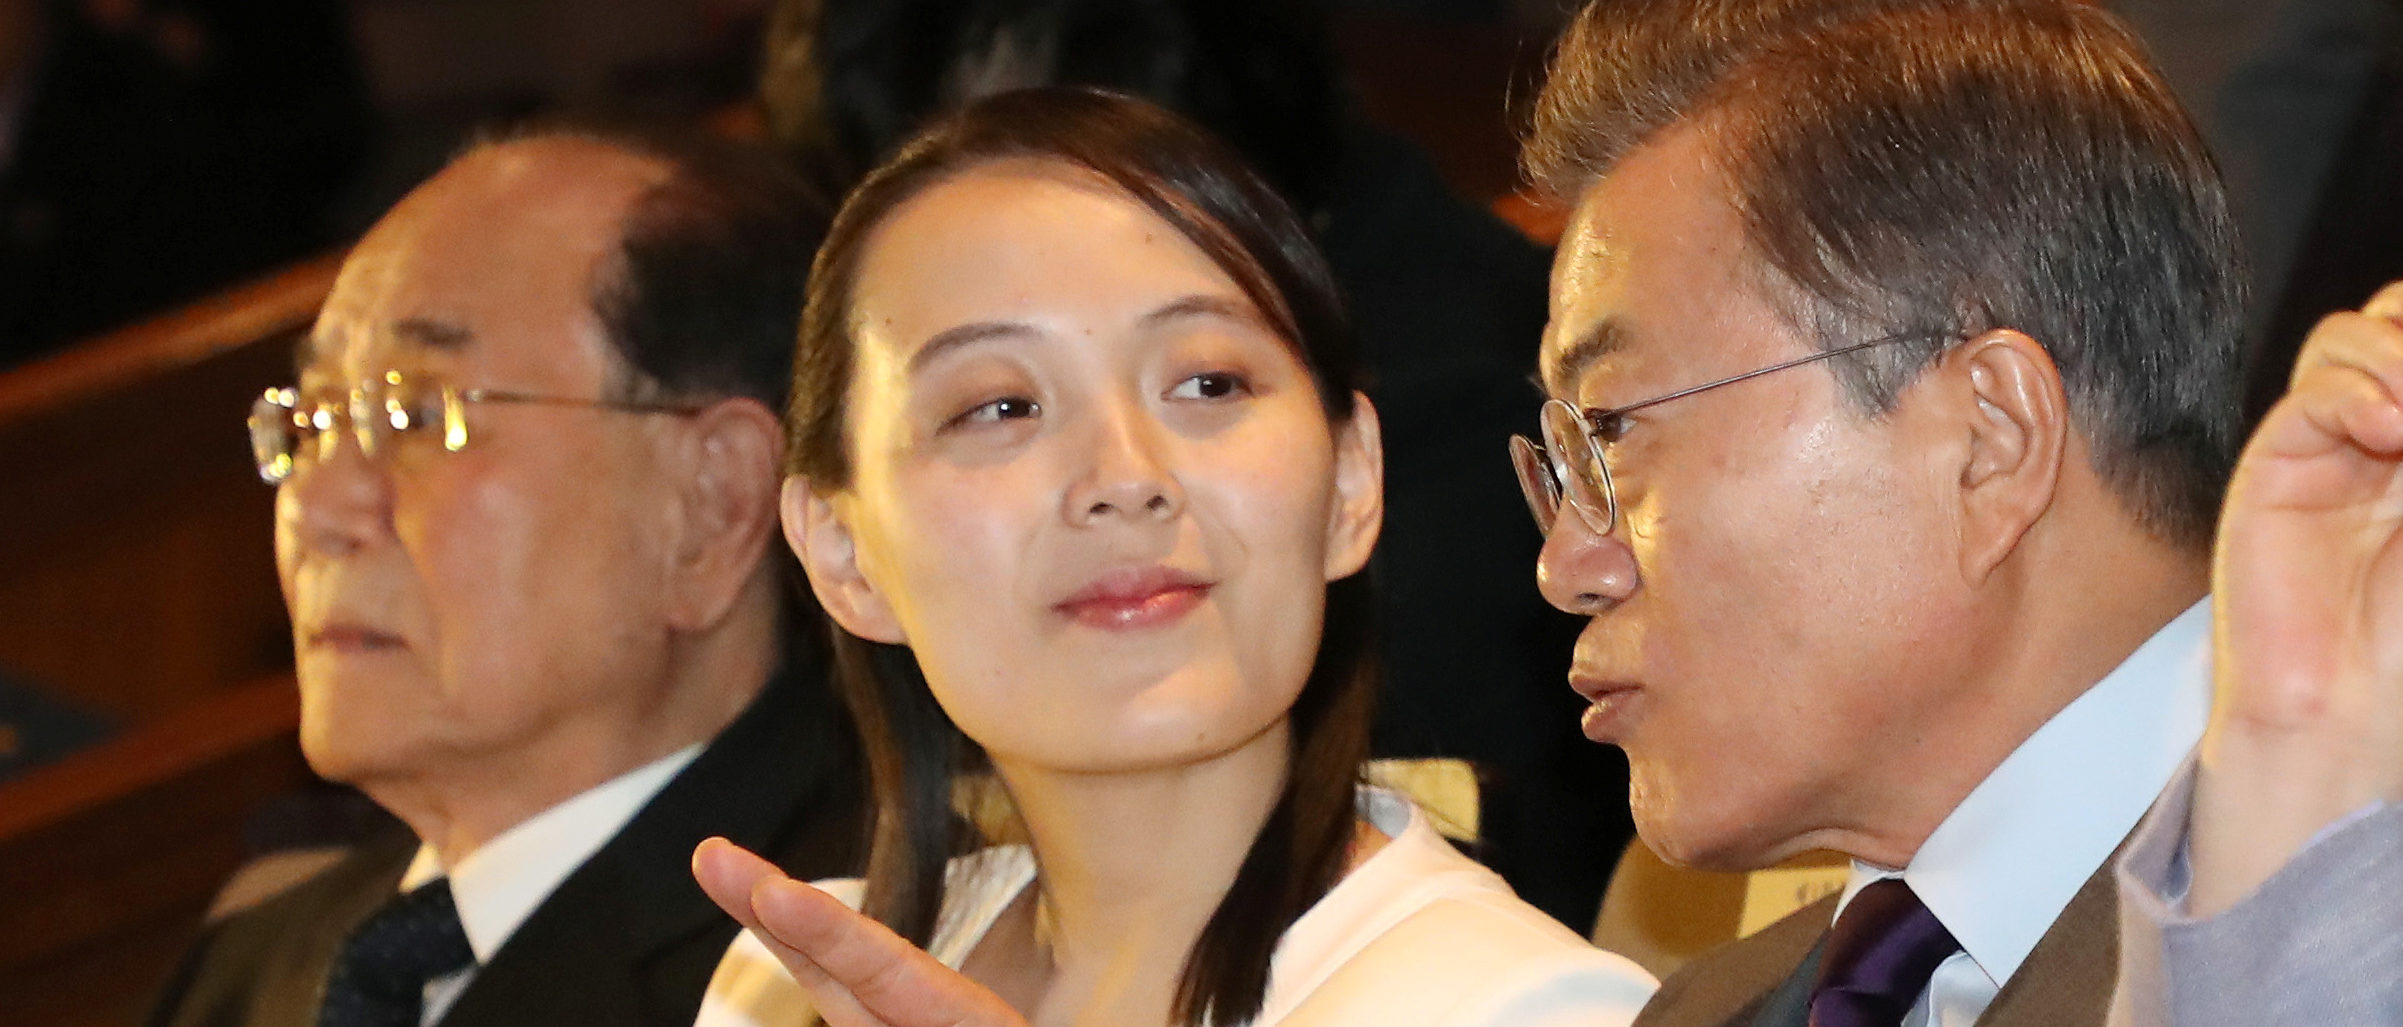 South Korean President Moon Jae-in talks with Kim Yo Jong, the sister of North Korea's leader Kim Jong Un, while watching North Korea's Samjiyon Orchestra's performance in Seoul, South Korea, February 11, 2018. Yonhap via REUTERS ATTENTION EDITORS - THIS IMAGE HAS BEEN SUPPLIED BY A THIRD PARTY. SOUTH KOREA OUT. NO COMMERCIAL OR EDITORIAL SALES IN SOUTH KOREA. NO RESALES. NO ARCHIVE. - RC130210B300